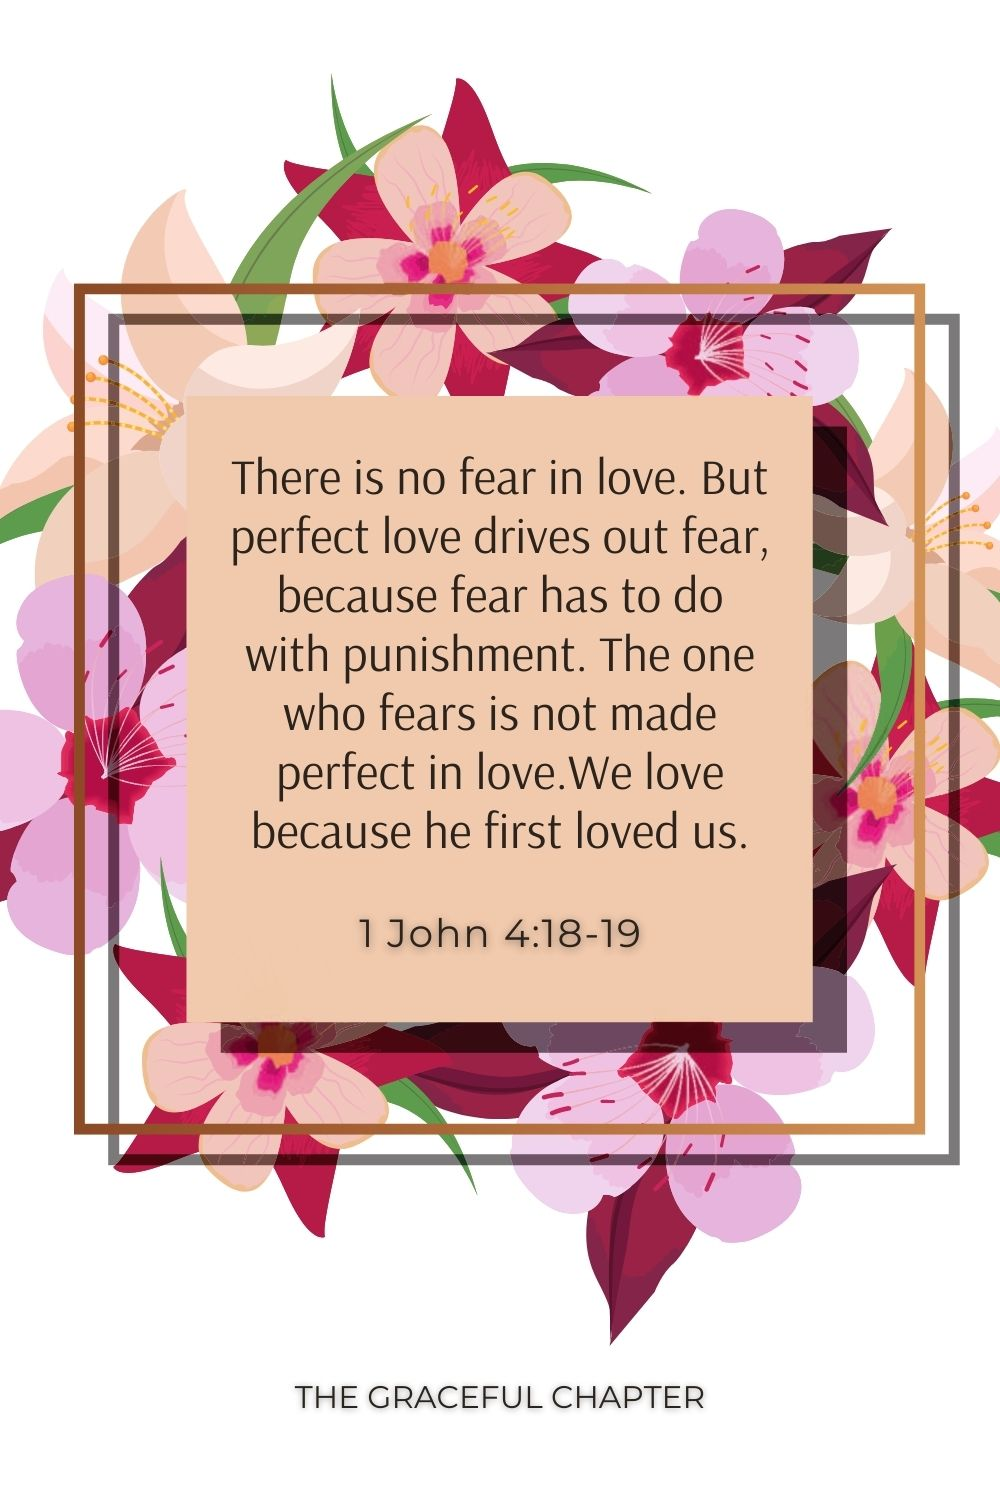 There is no fear in love. But perfect love drives out fear, because fear has to do with punishment. The one who fears is not made perfect in love.We love because he first loved us. 1 John 4:18-19